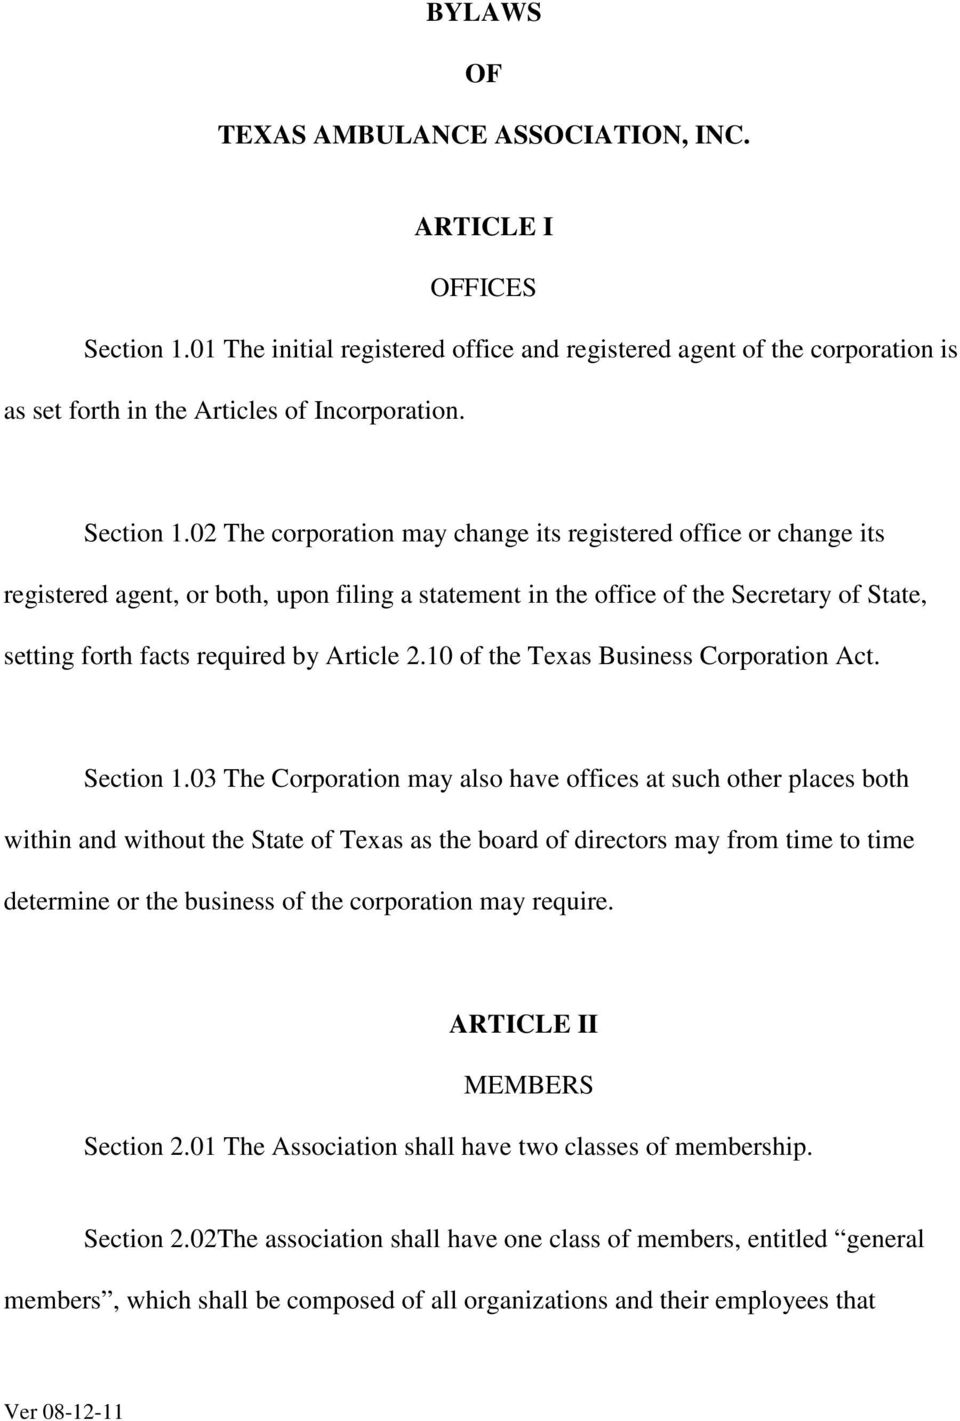 02 The corporation may change its registered office or change its registered agent, or both, upon filing a statement in the office of the Secretary of State, setting forth facts required by Article 2.